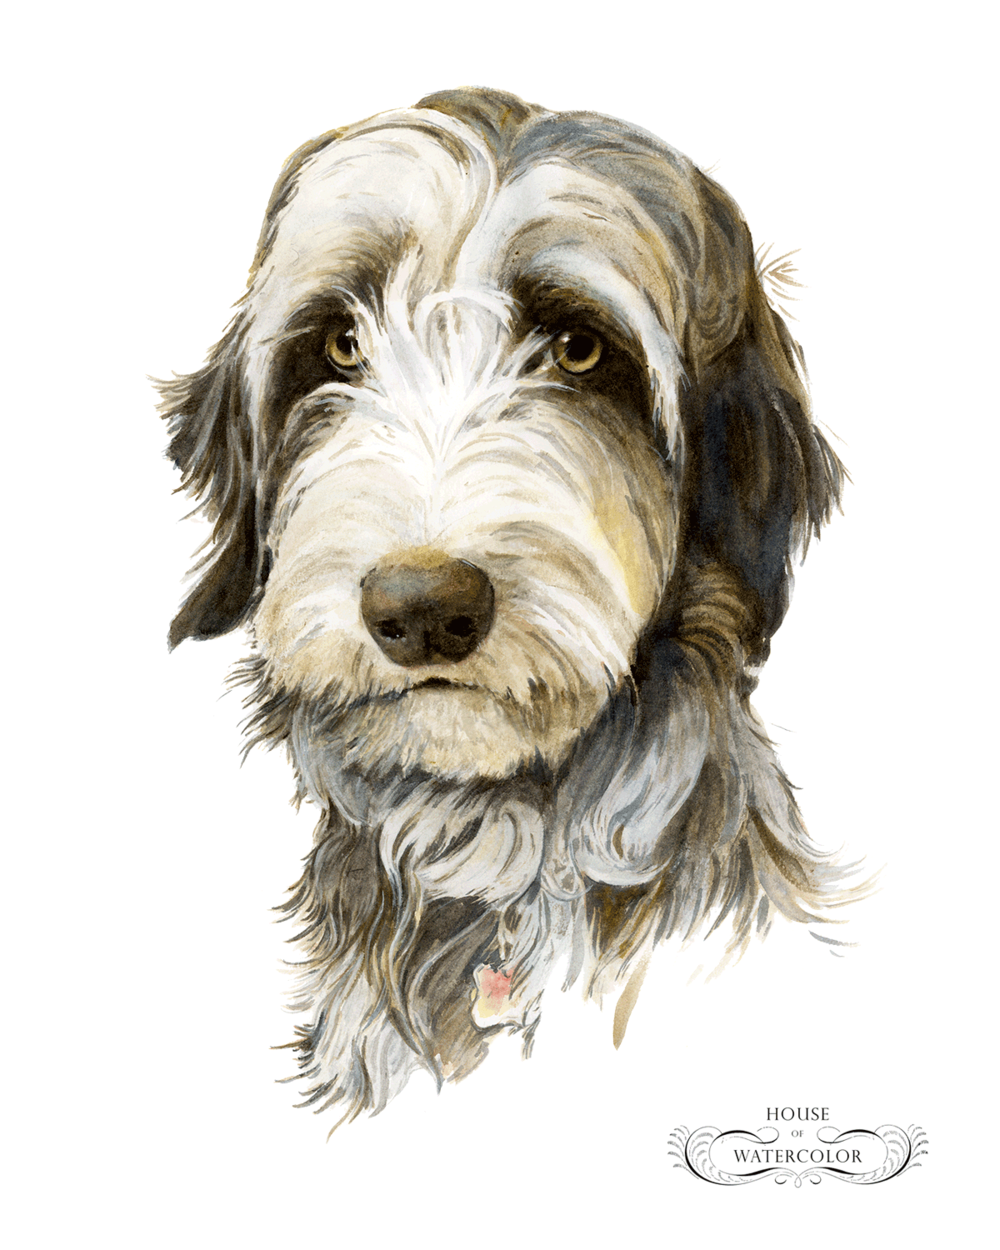 Ladybird-House-of-Watercolor-Pet-Portrait.png